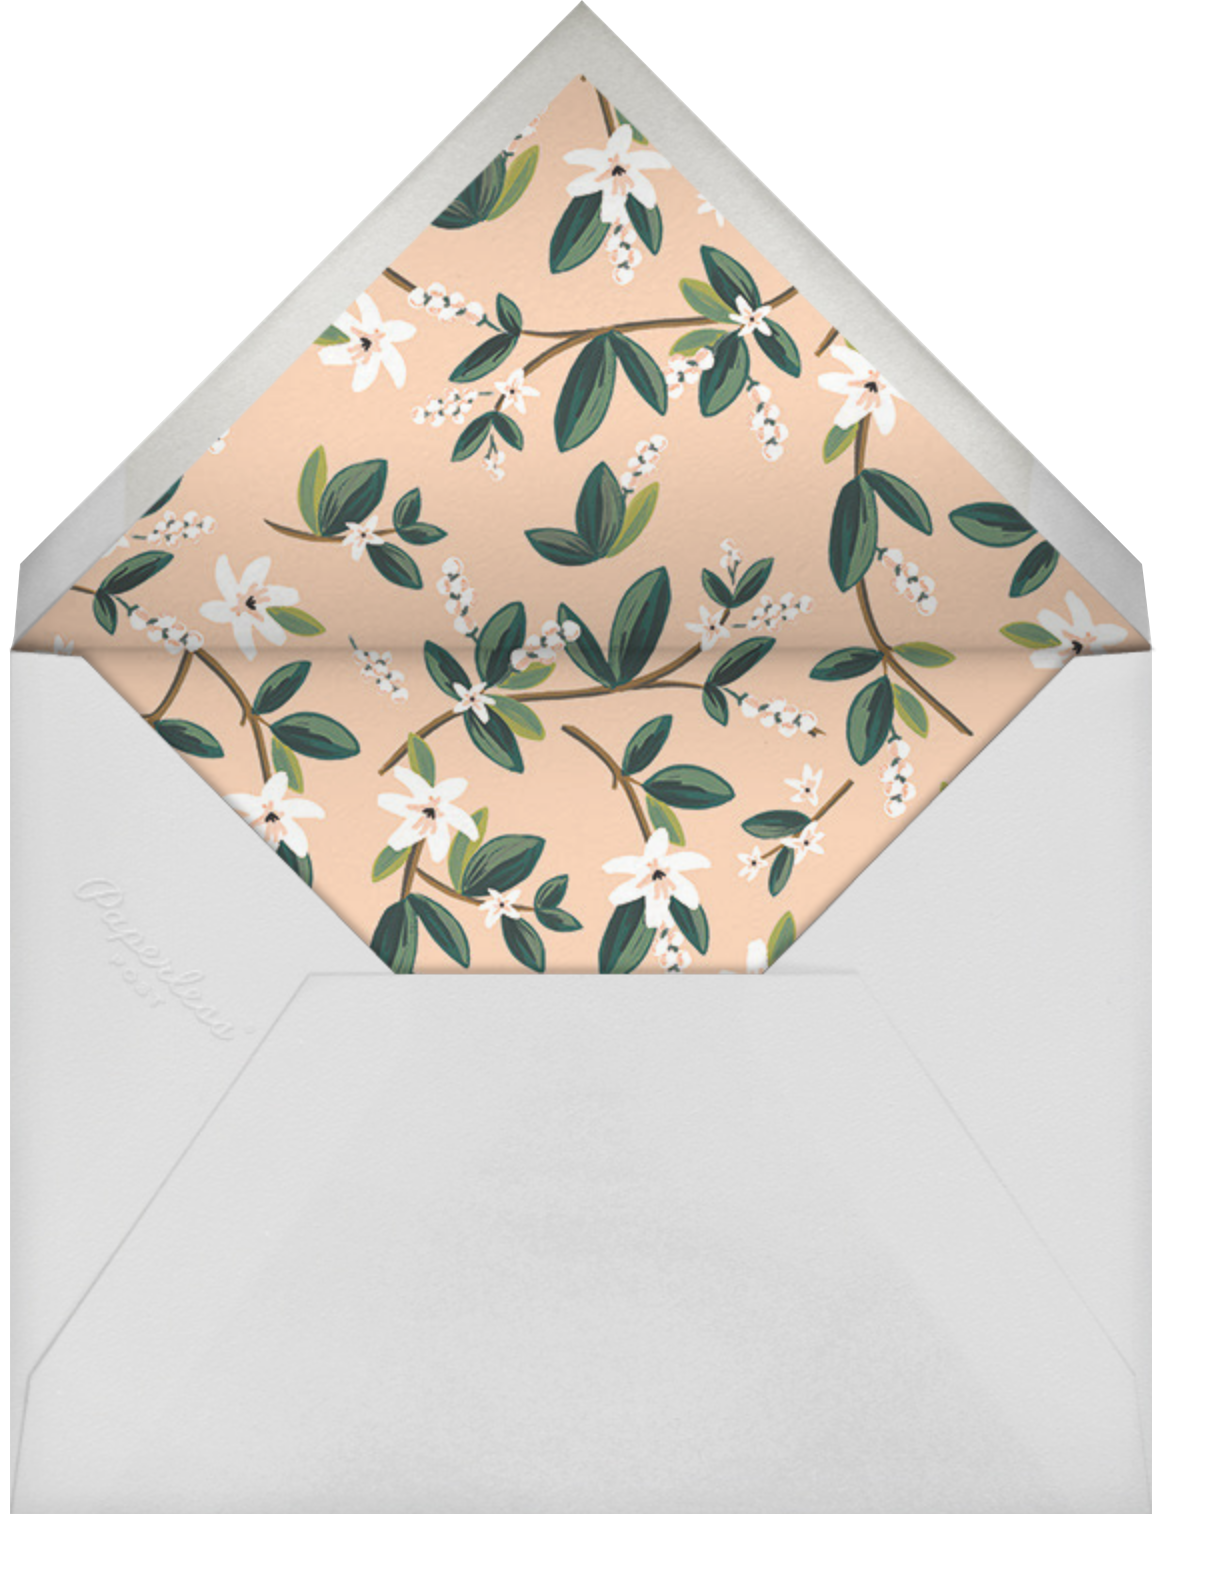 November Herbarium - Rifle Paper Co. - Wedding party requests - envelope back